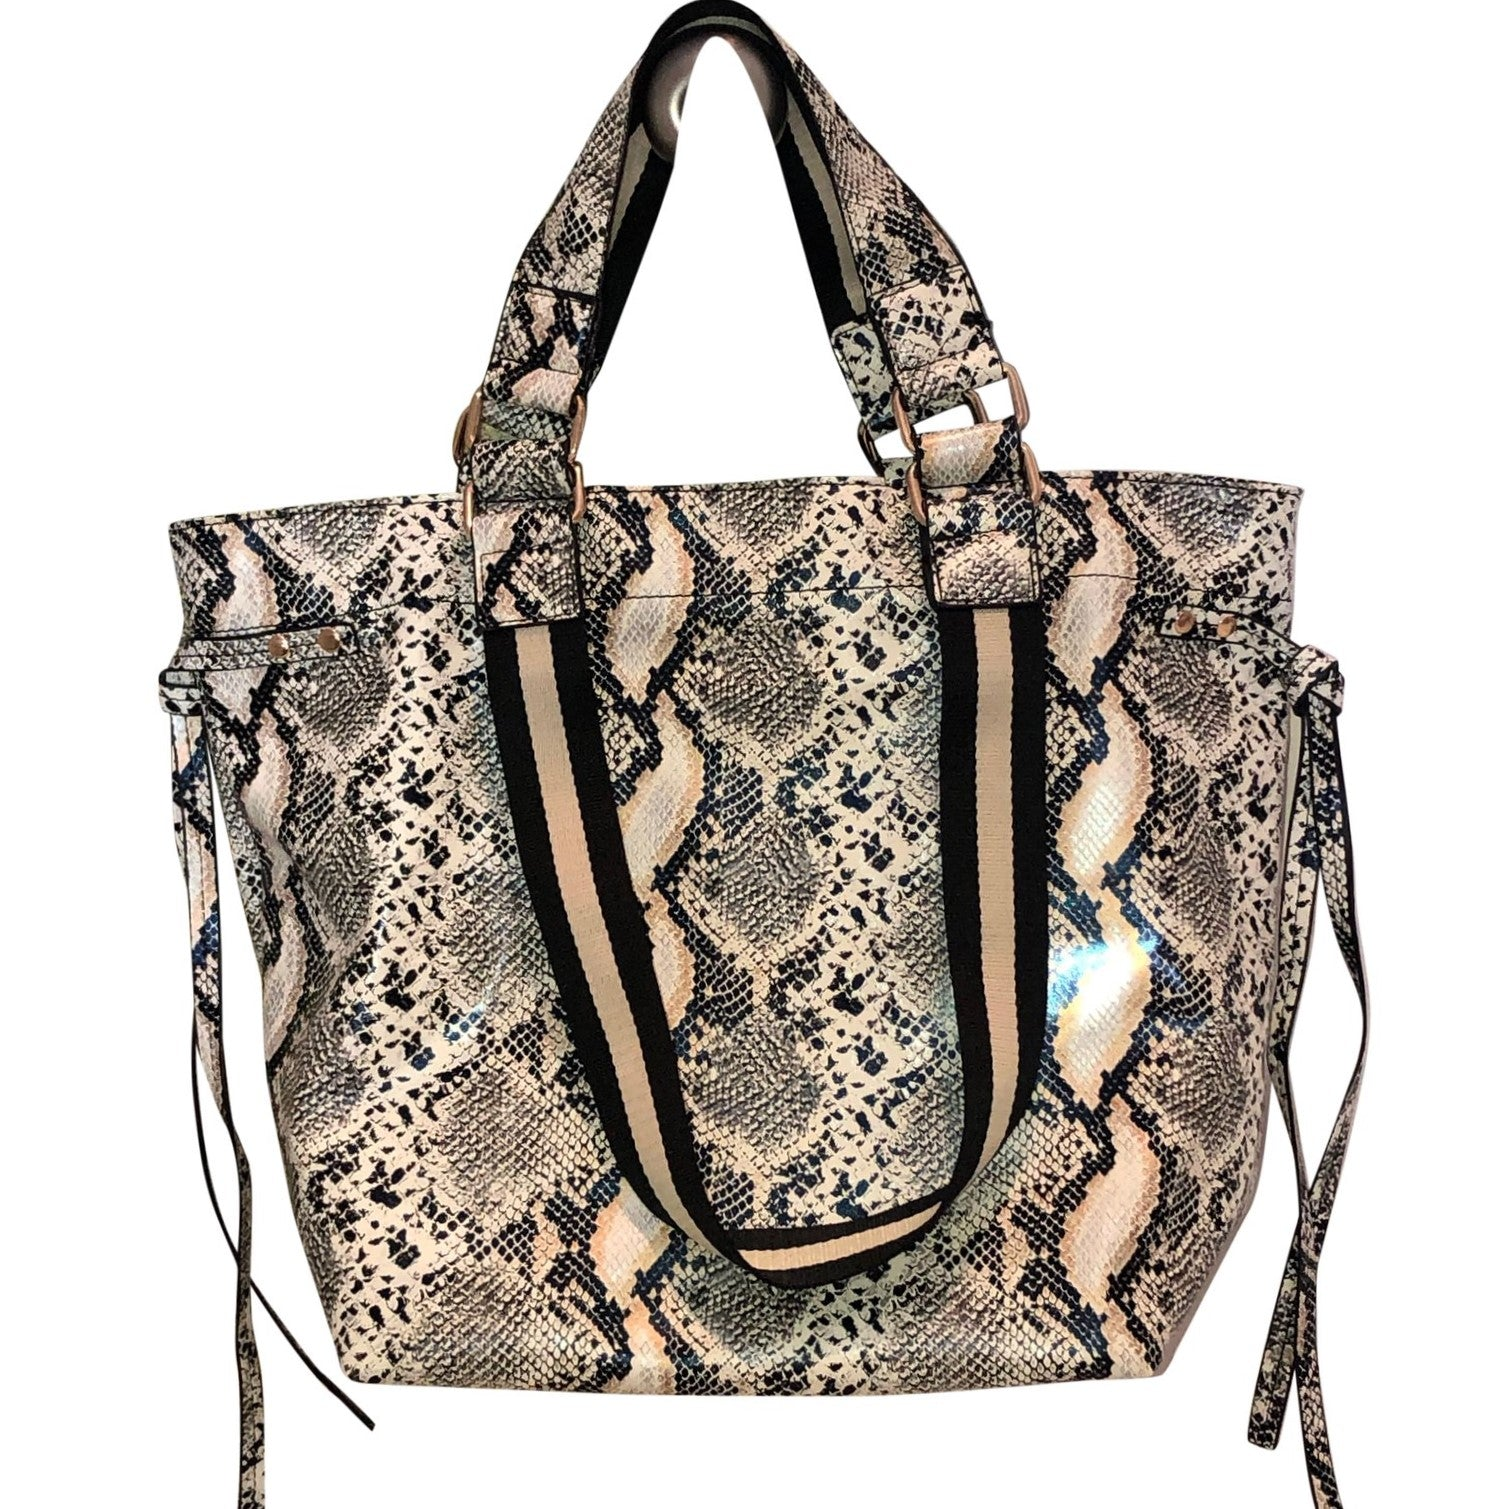 Double Handle Python Print Tote